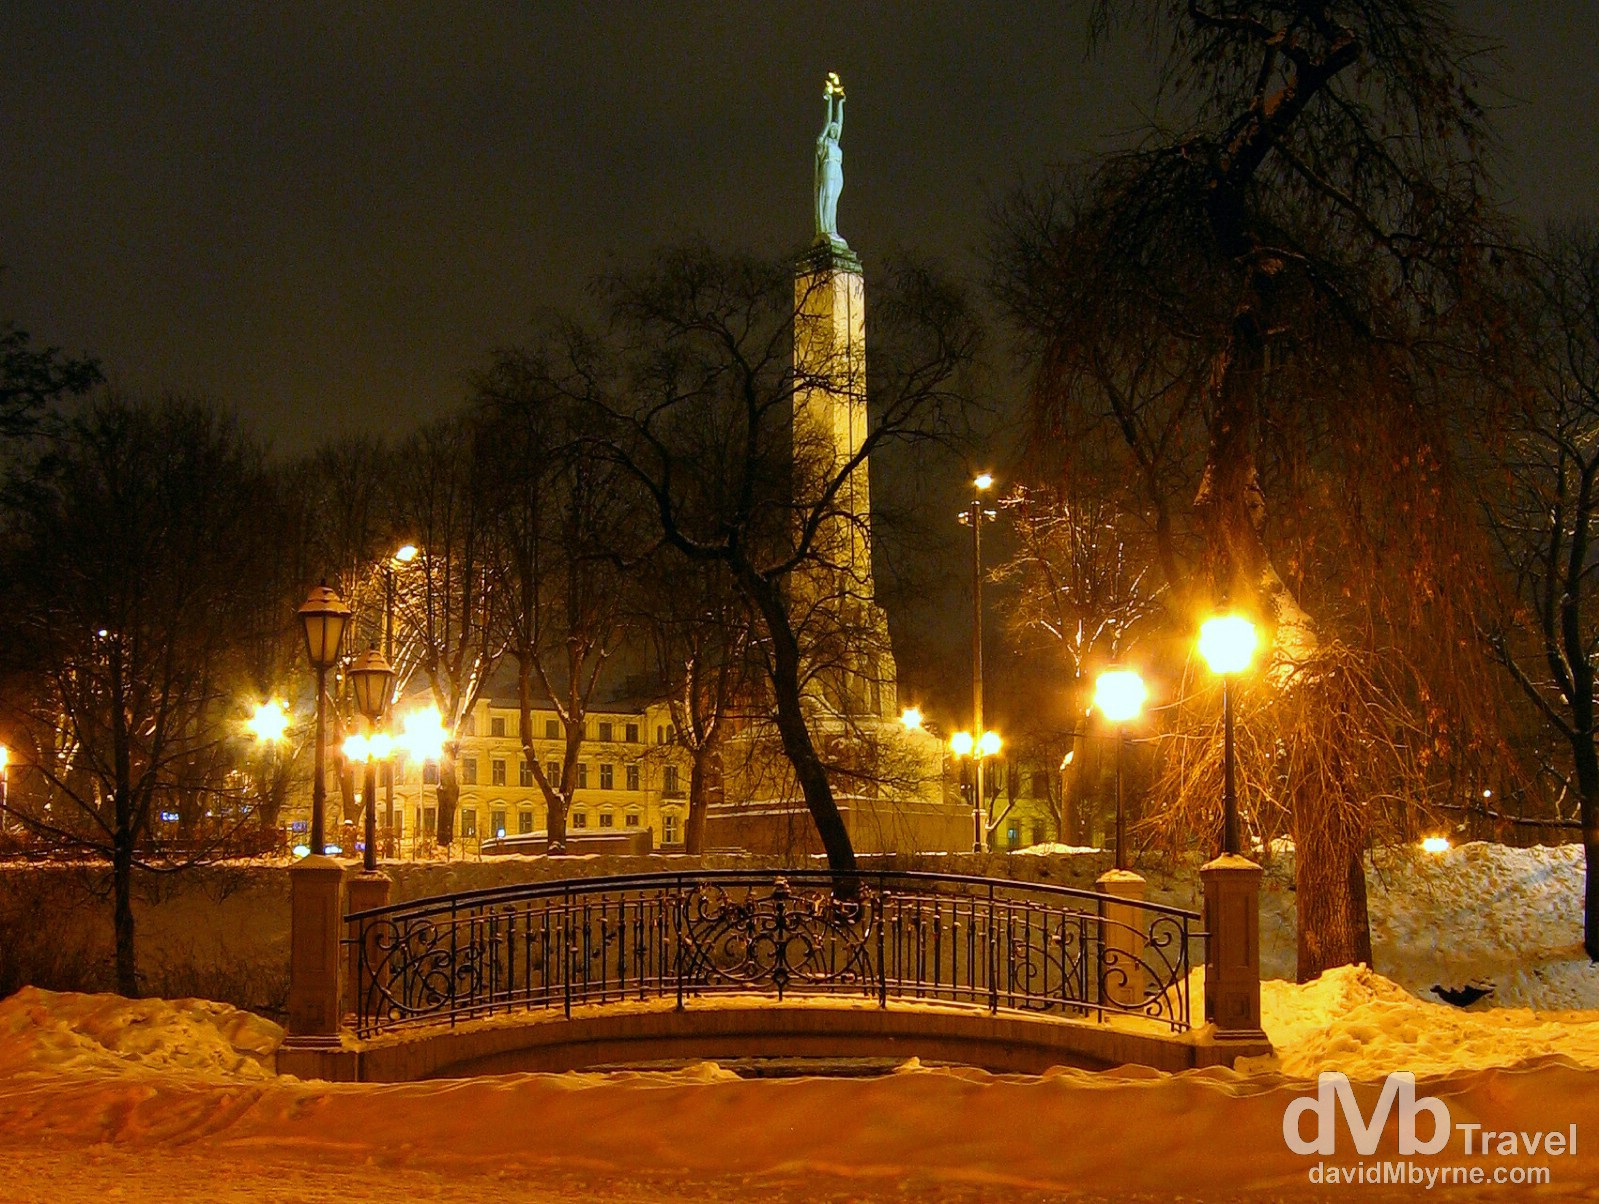 Latvia's Freedom Monument as seen from Bastion Hill, Riga, Latvia. March 2, 2006.